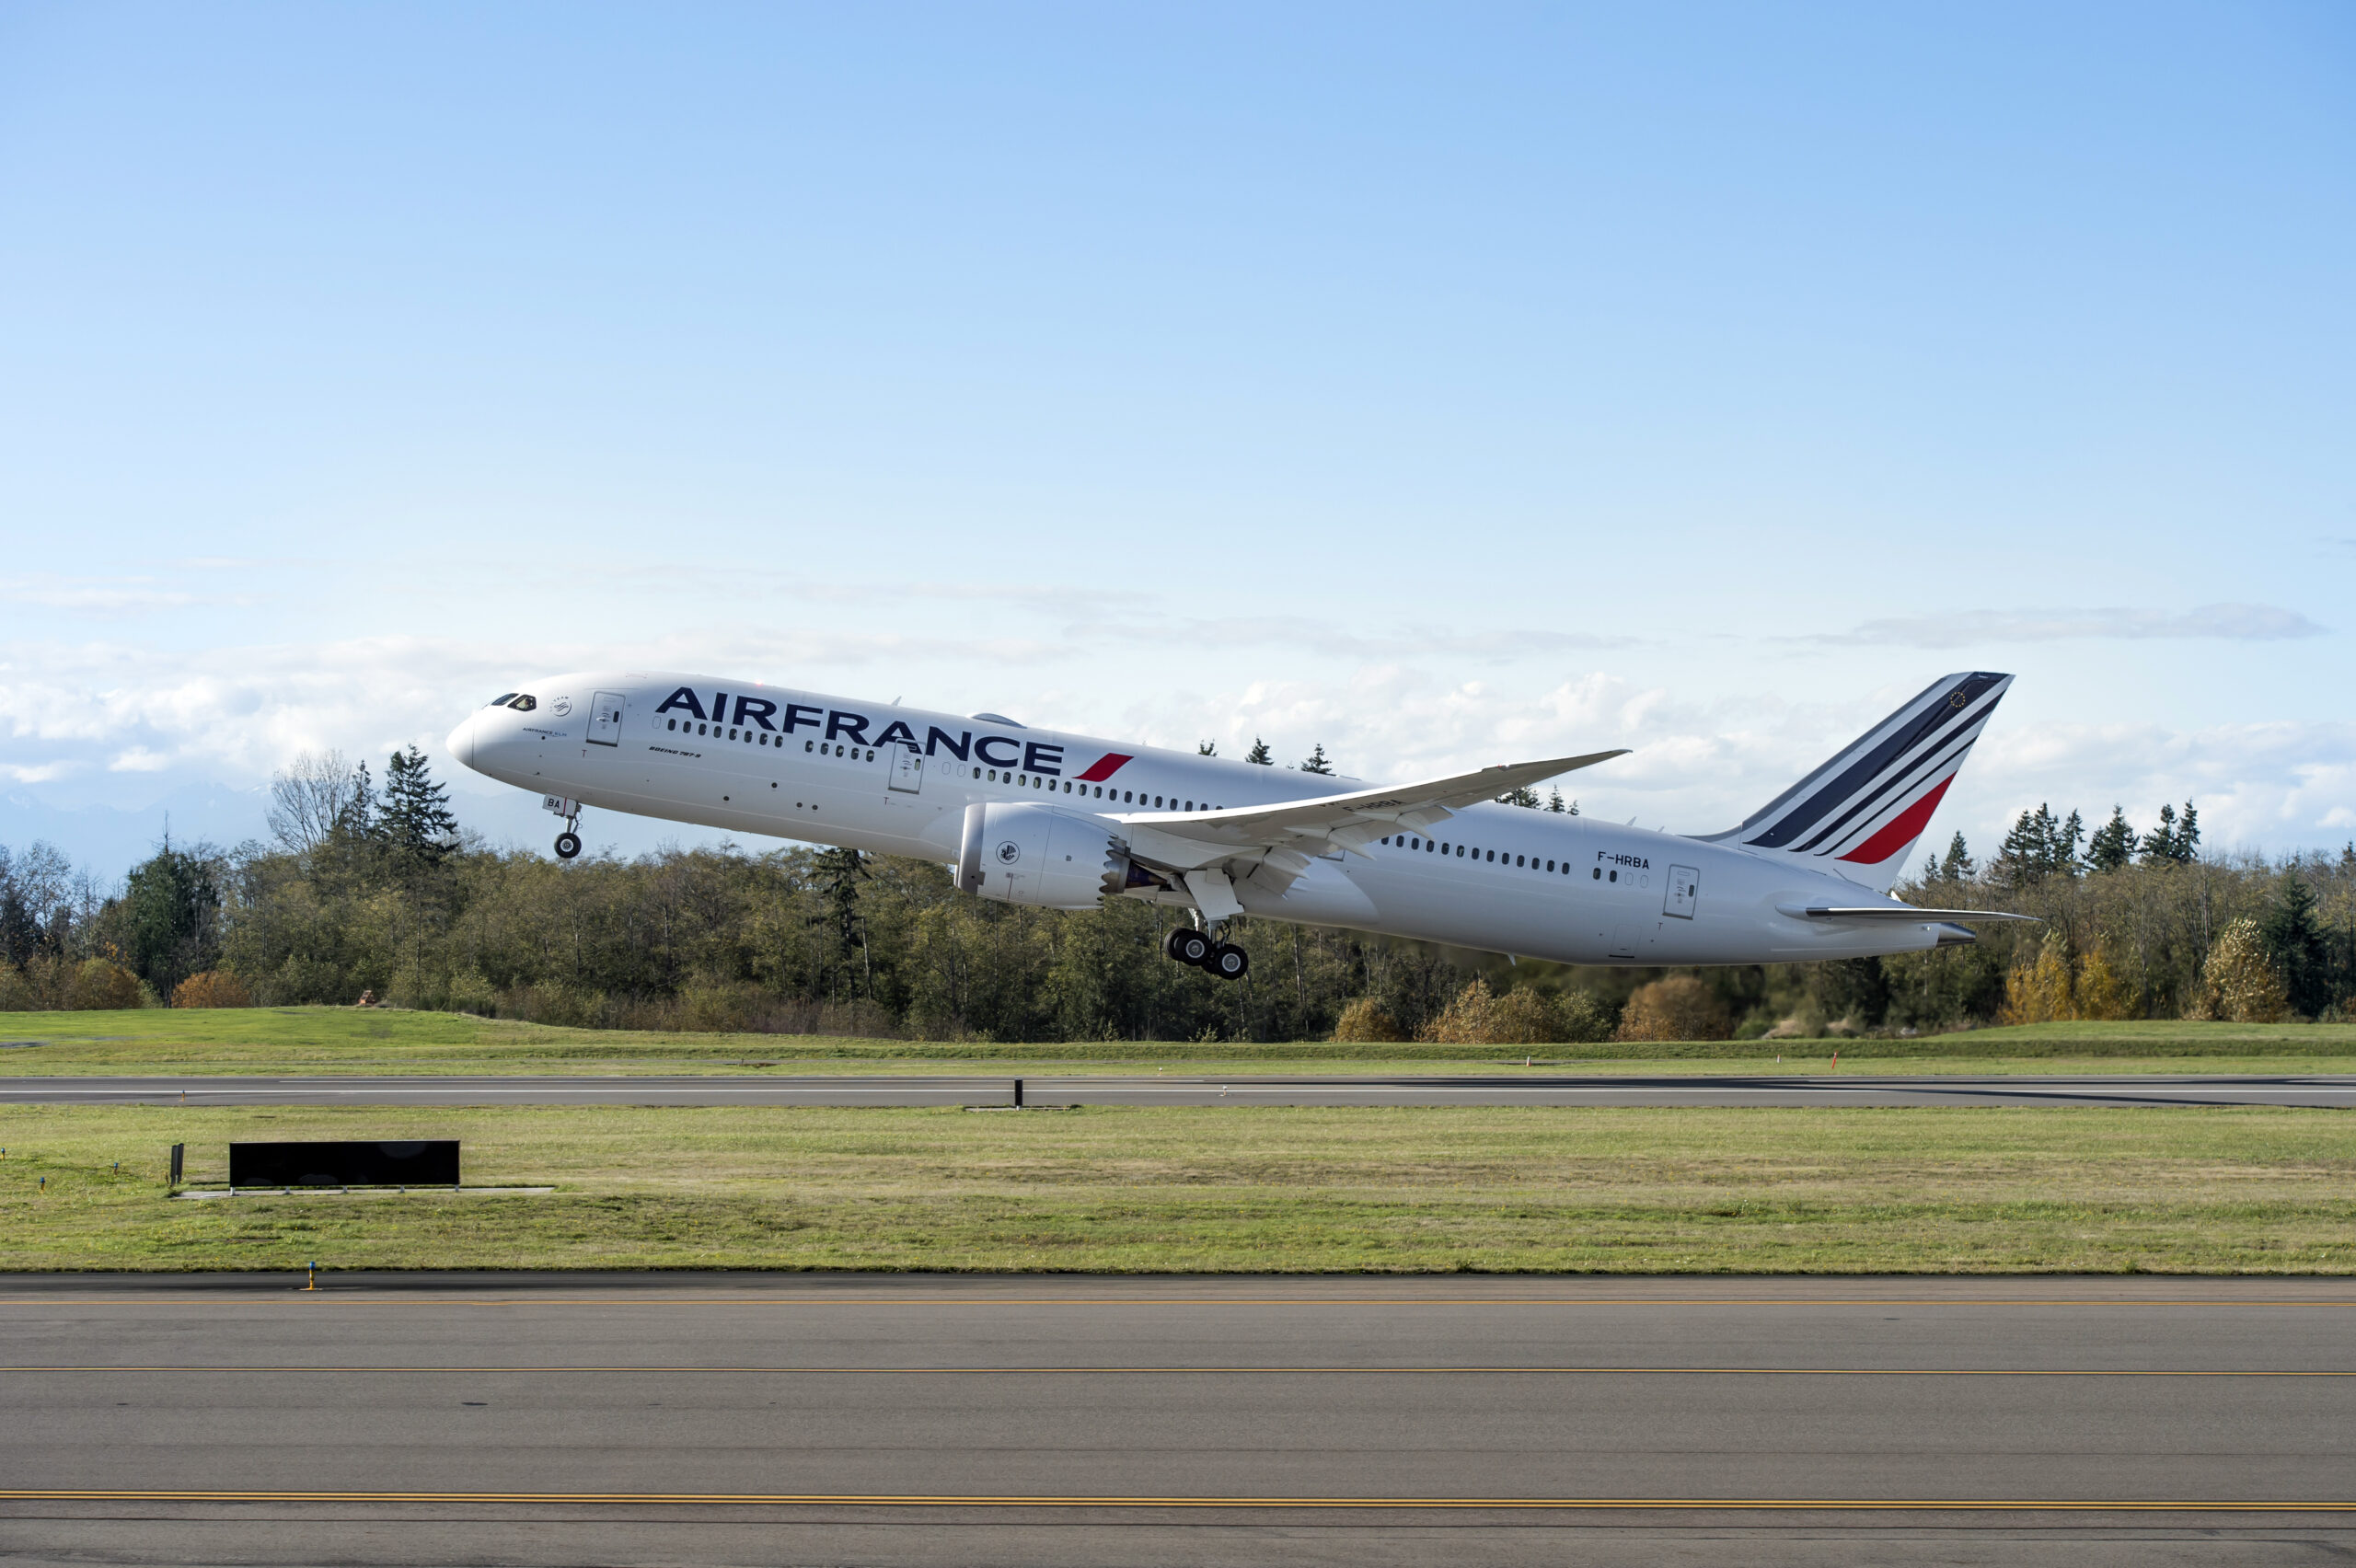 Four Years Ago Boeing Delivered 500th 787 Produced To Air France